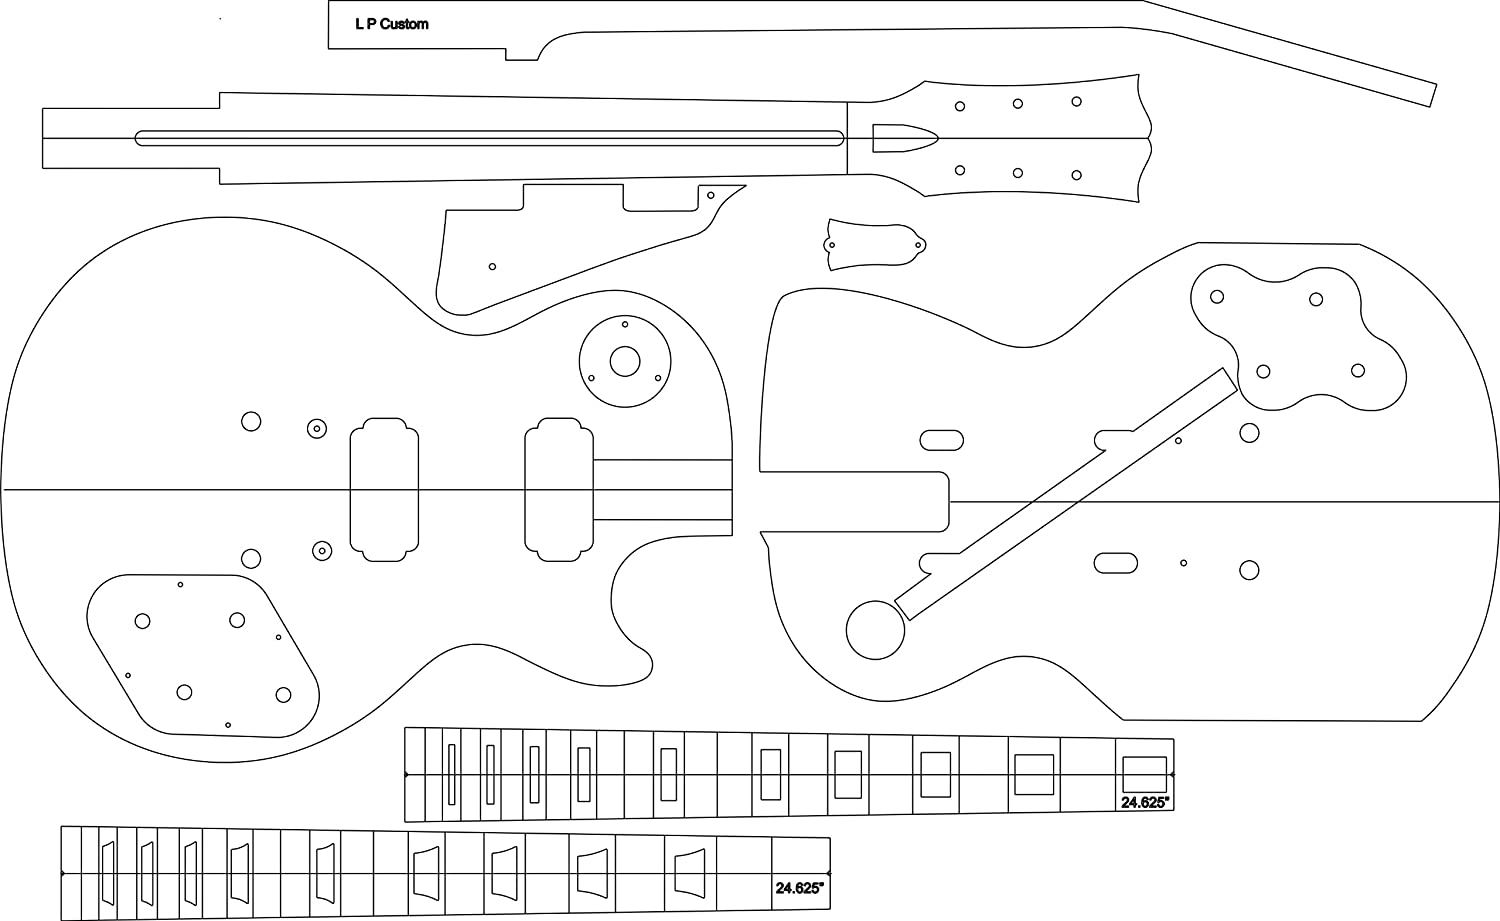 LP Electric Guitar Routing Template